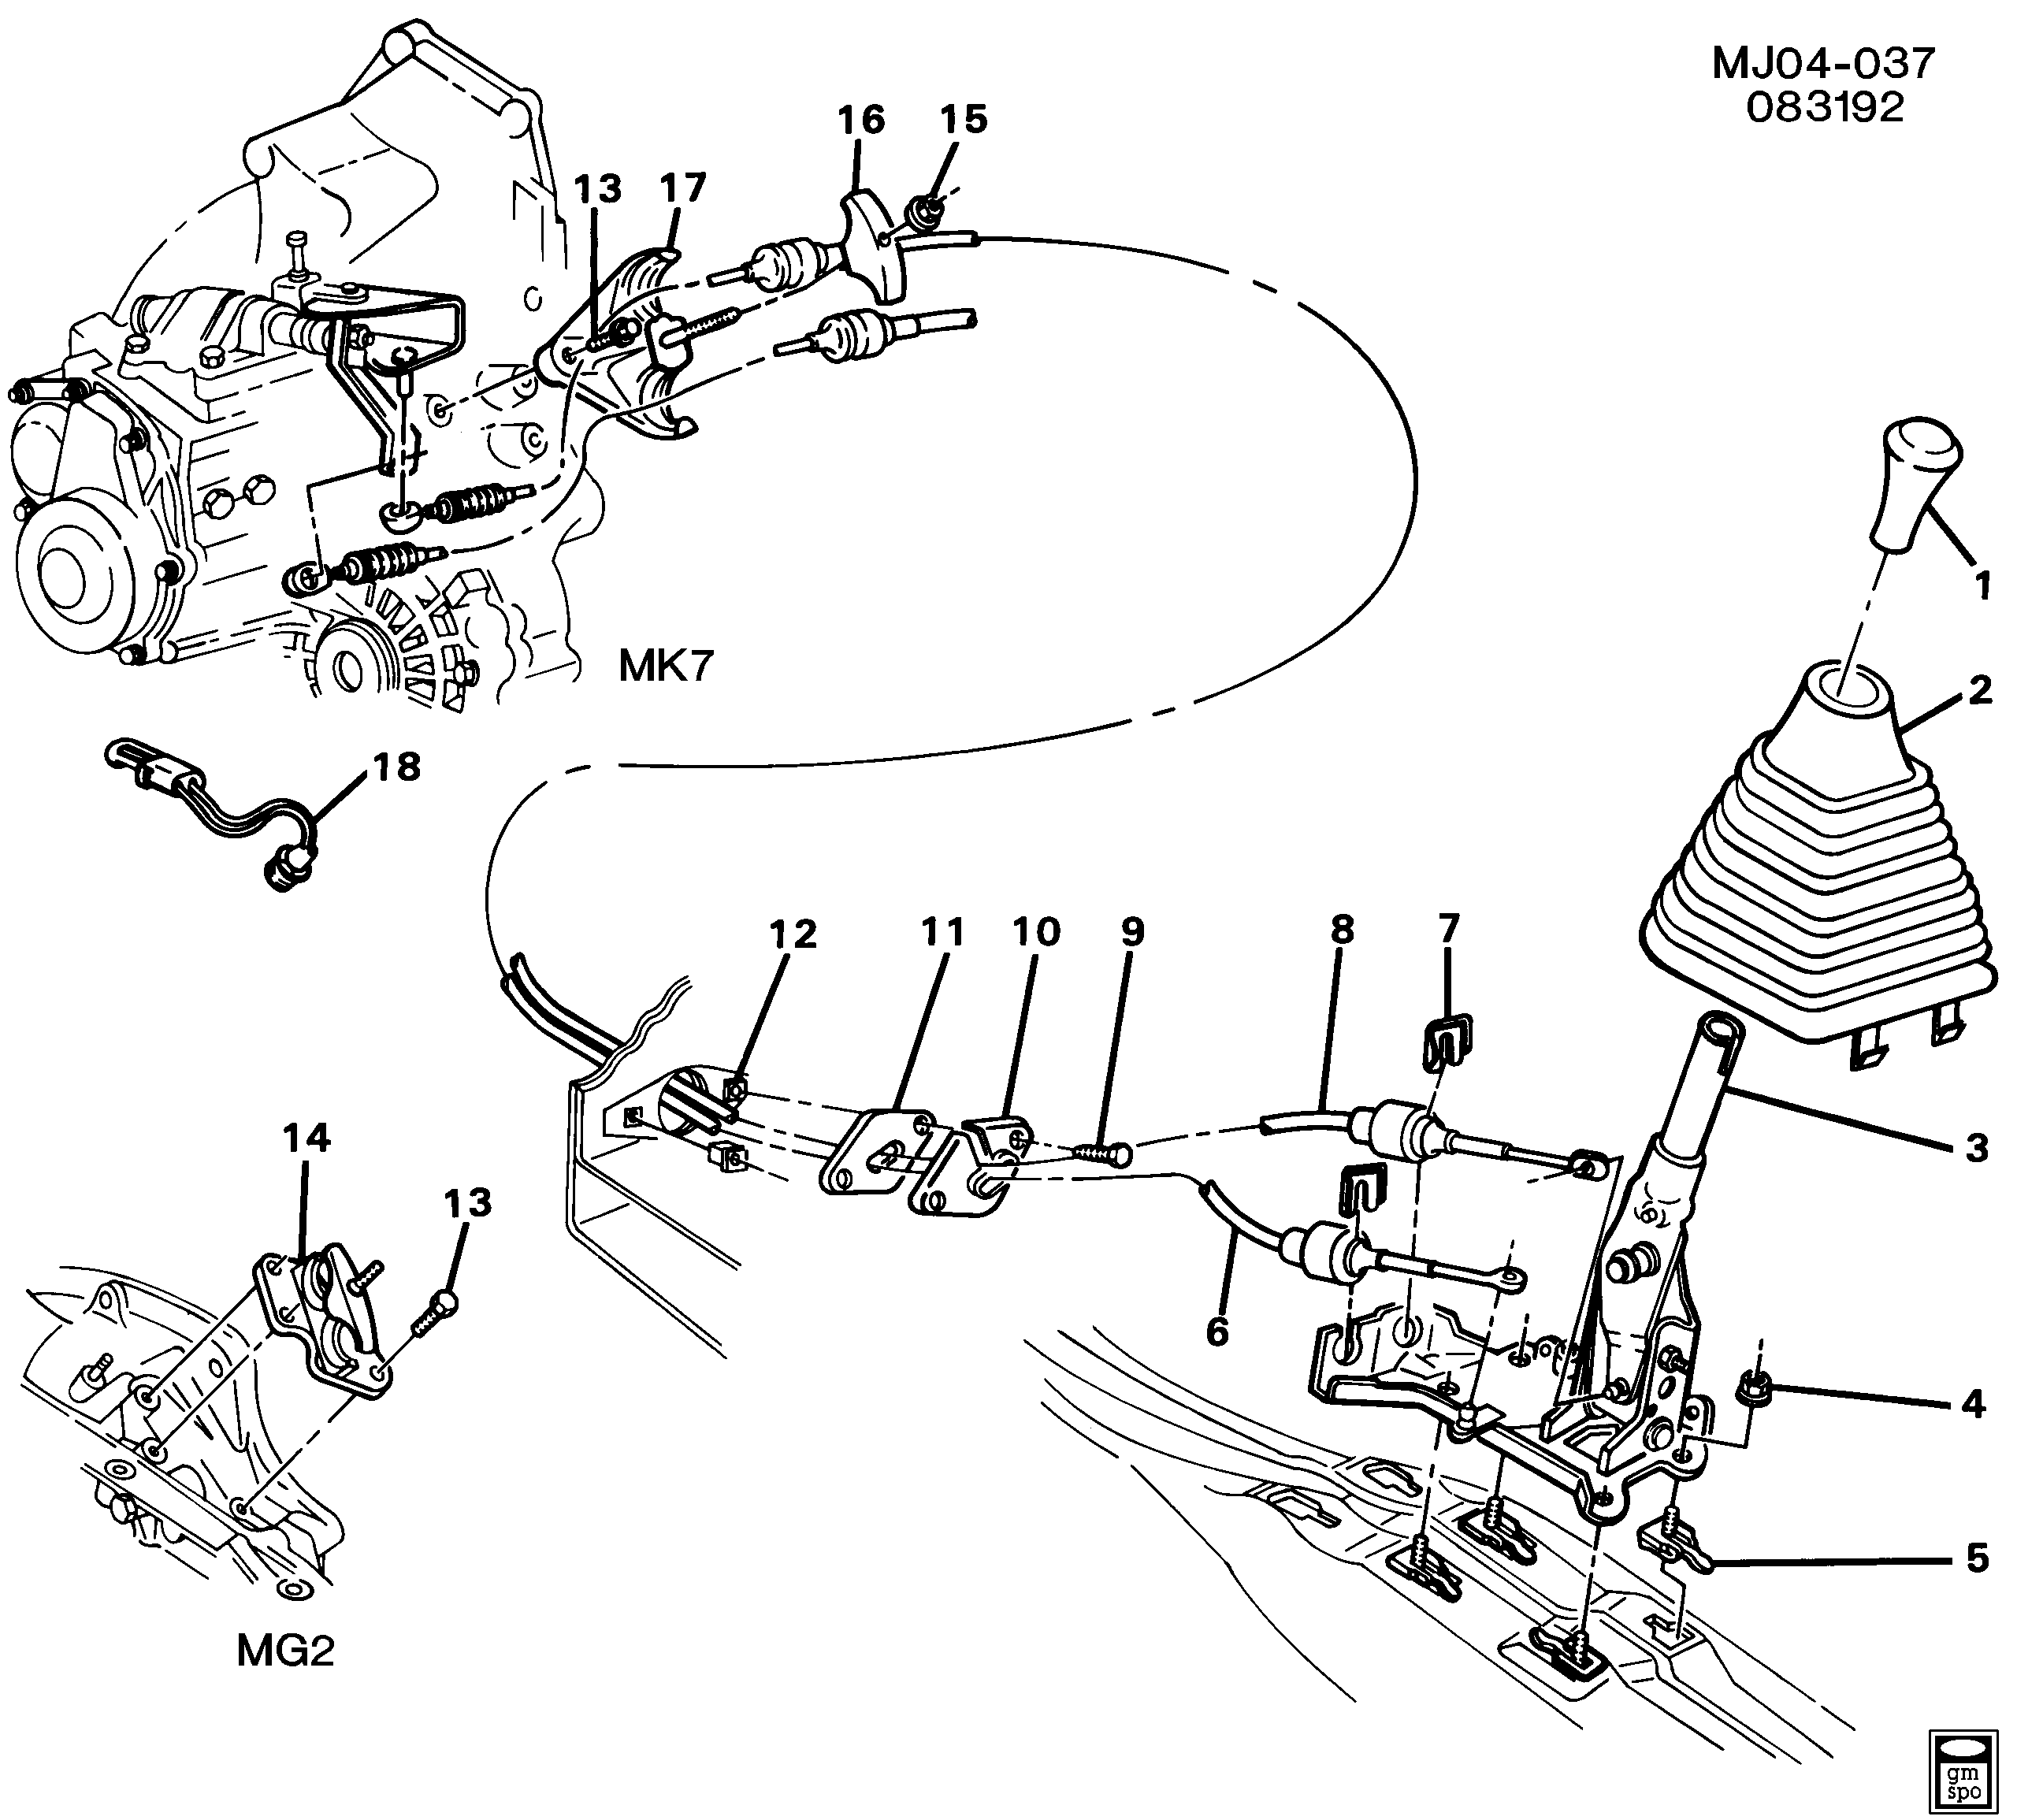 31 Chevy Cavalier Exhaust System Diagram